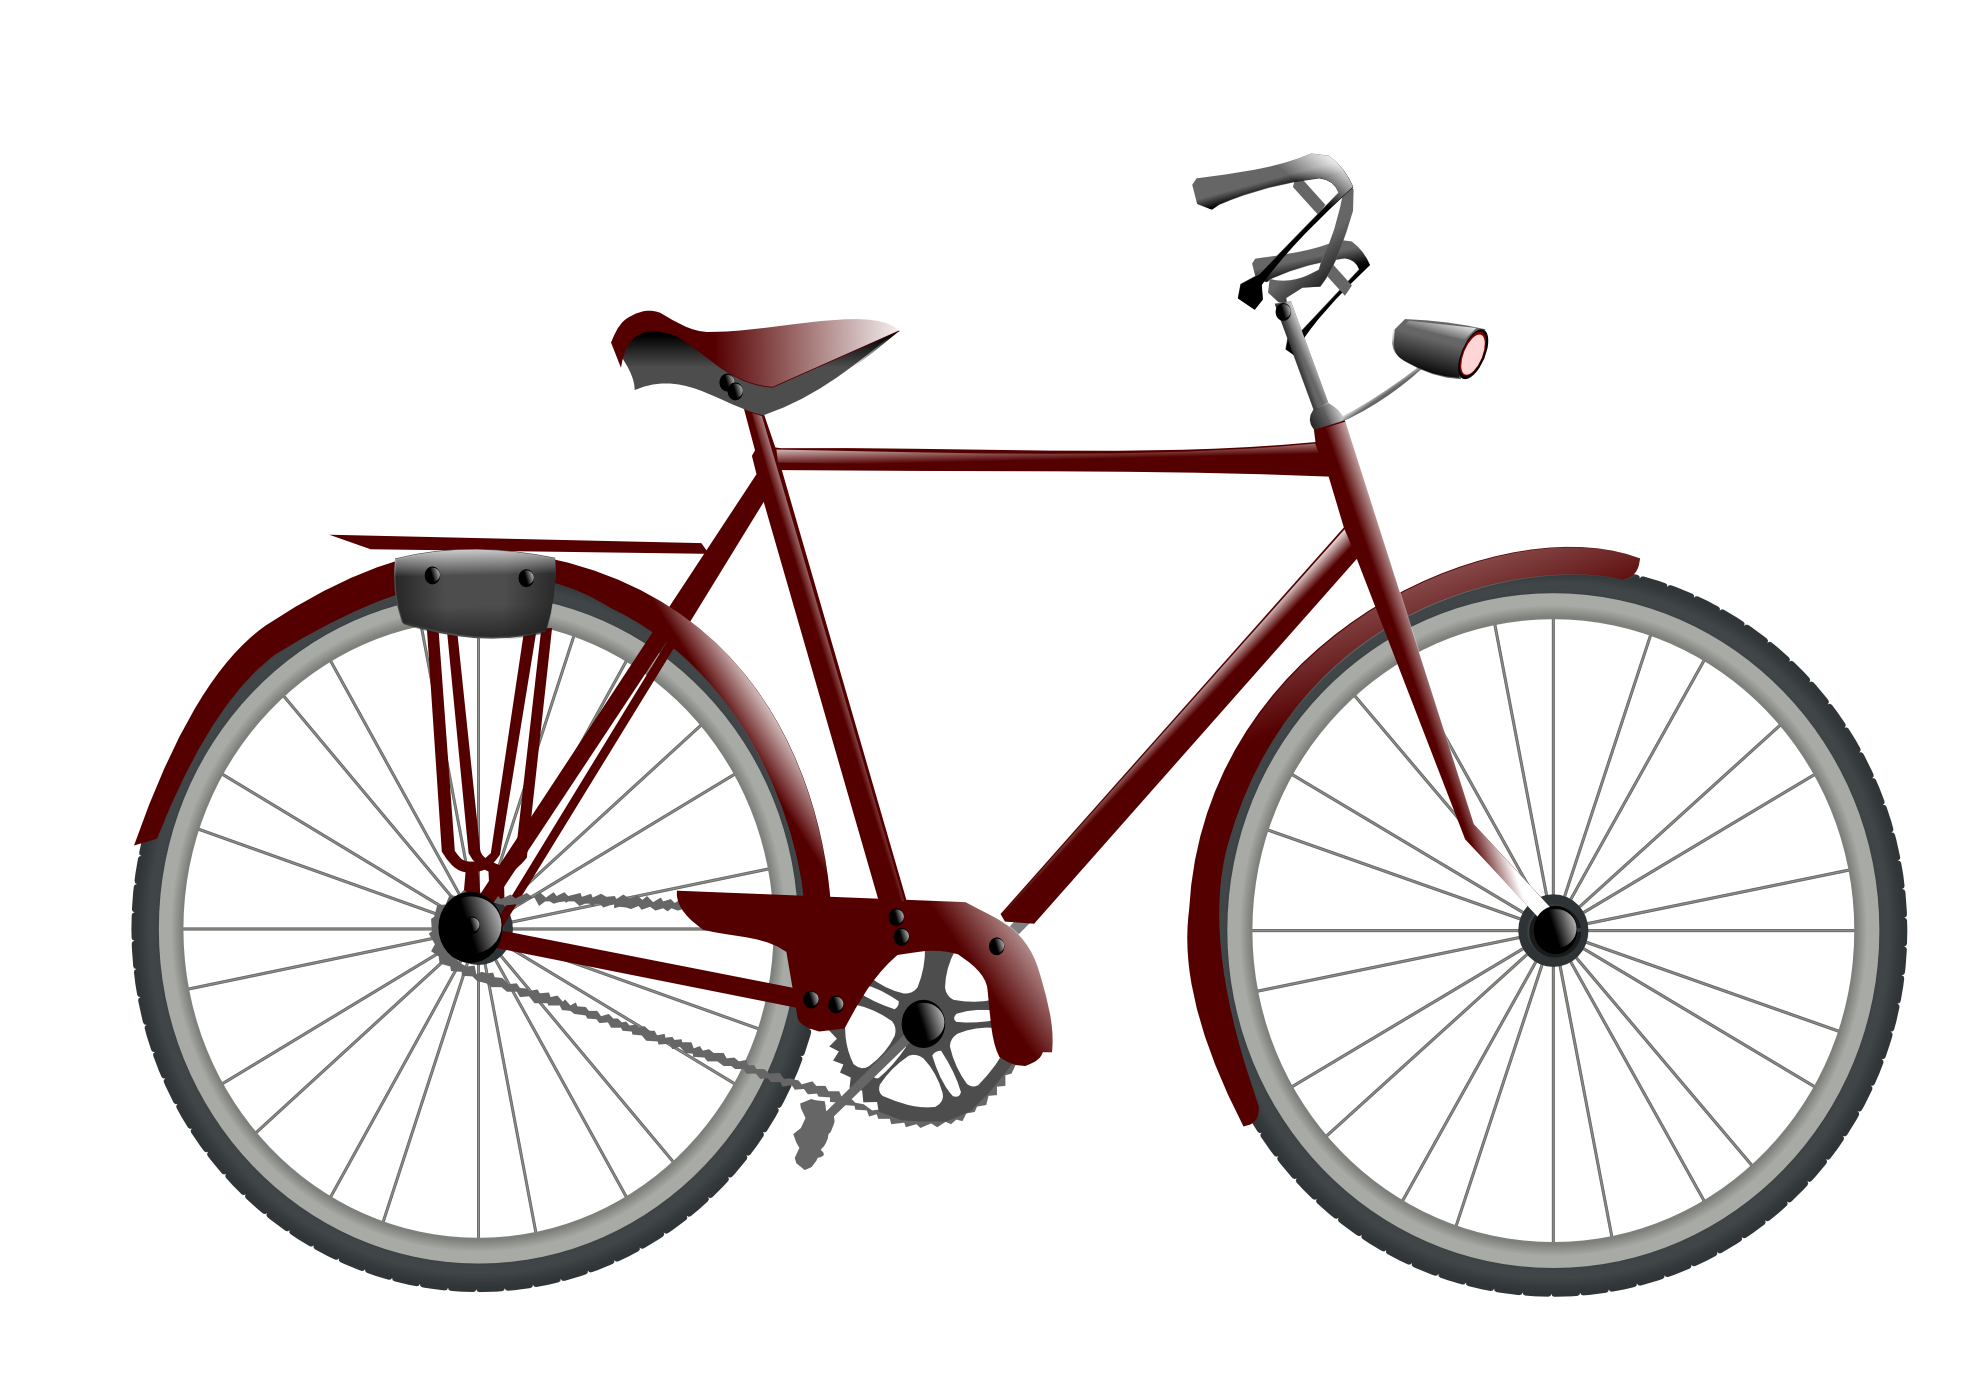 Vector bike transparent. Collection of free hybridized